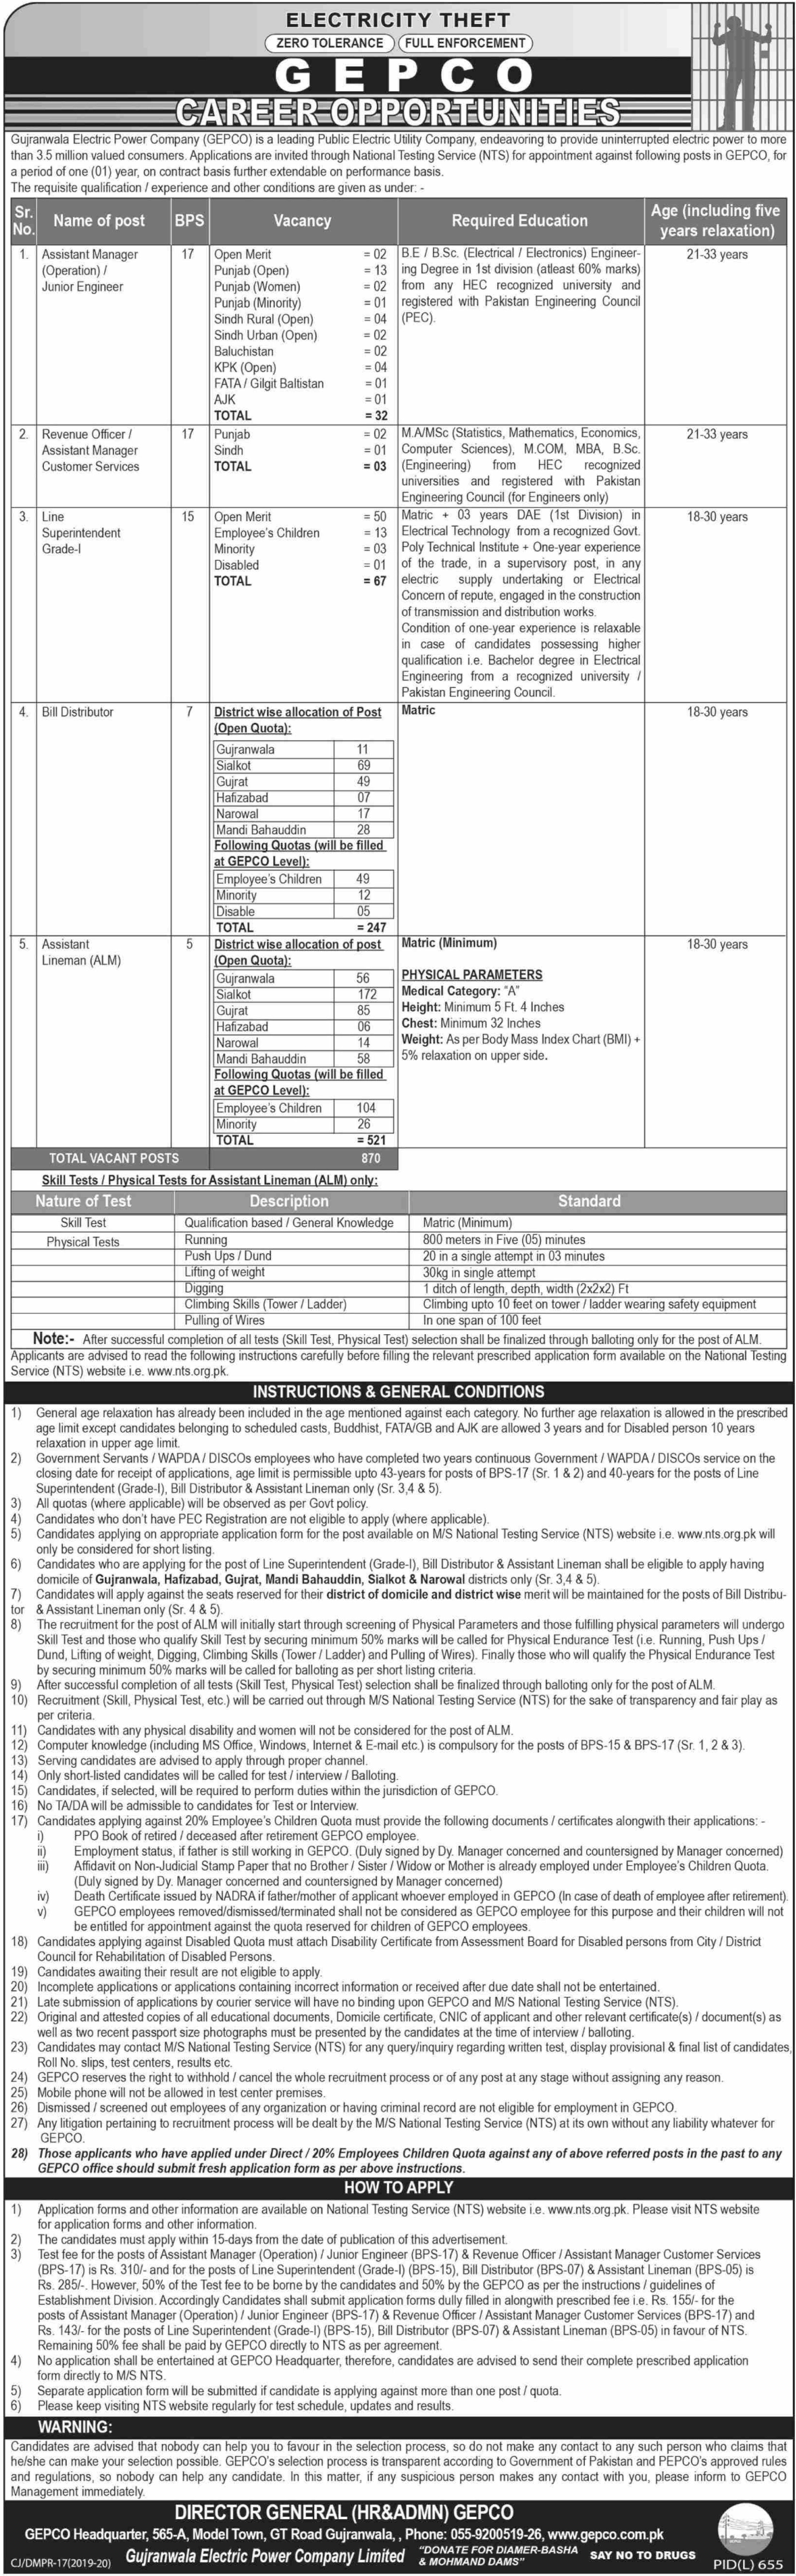 Gujranwala Electric Power Company GEPCO Jobs 2019 NTS Application Form